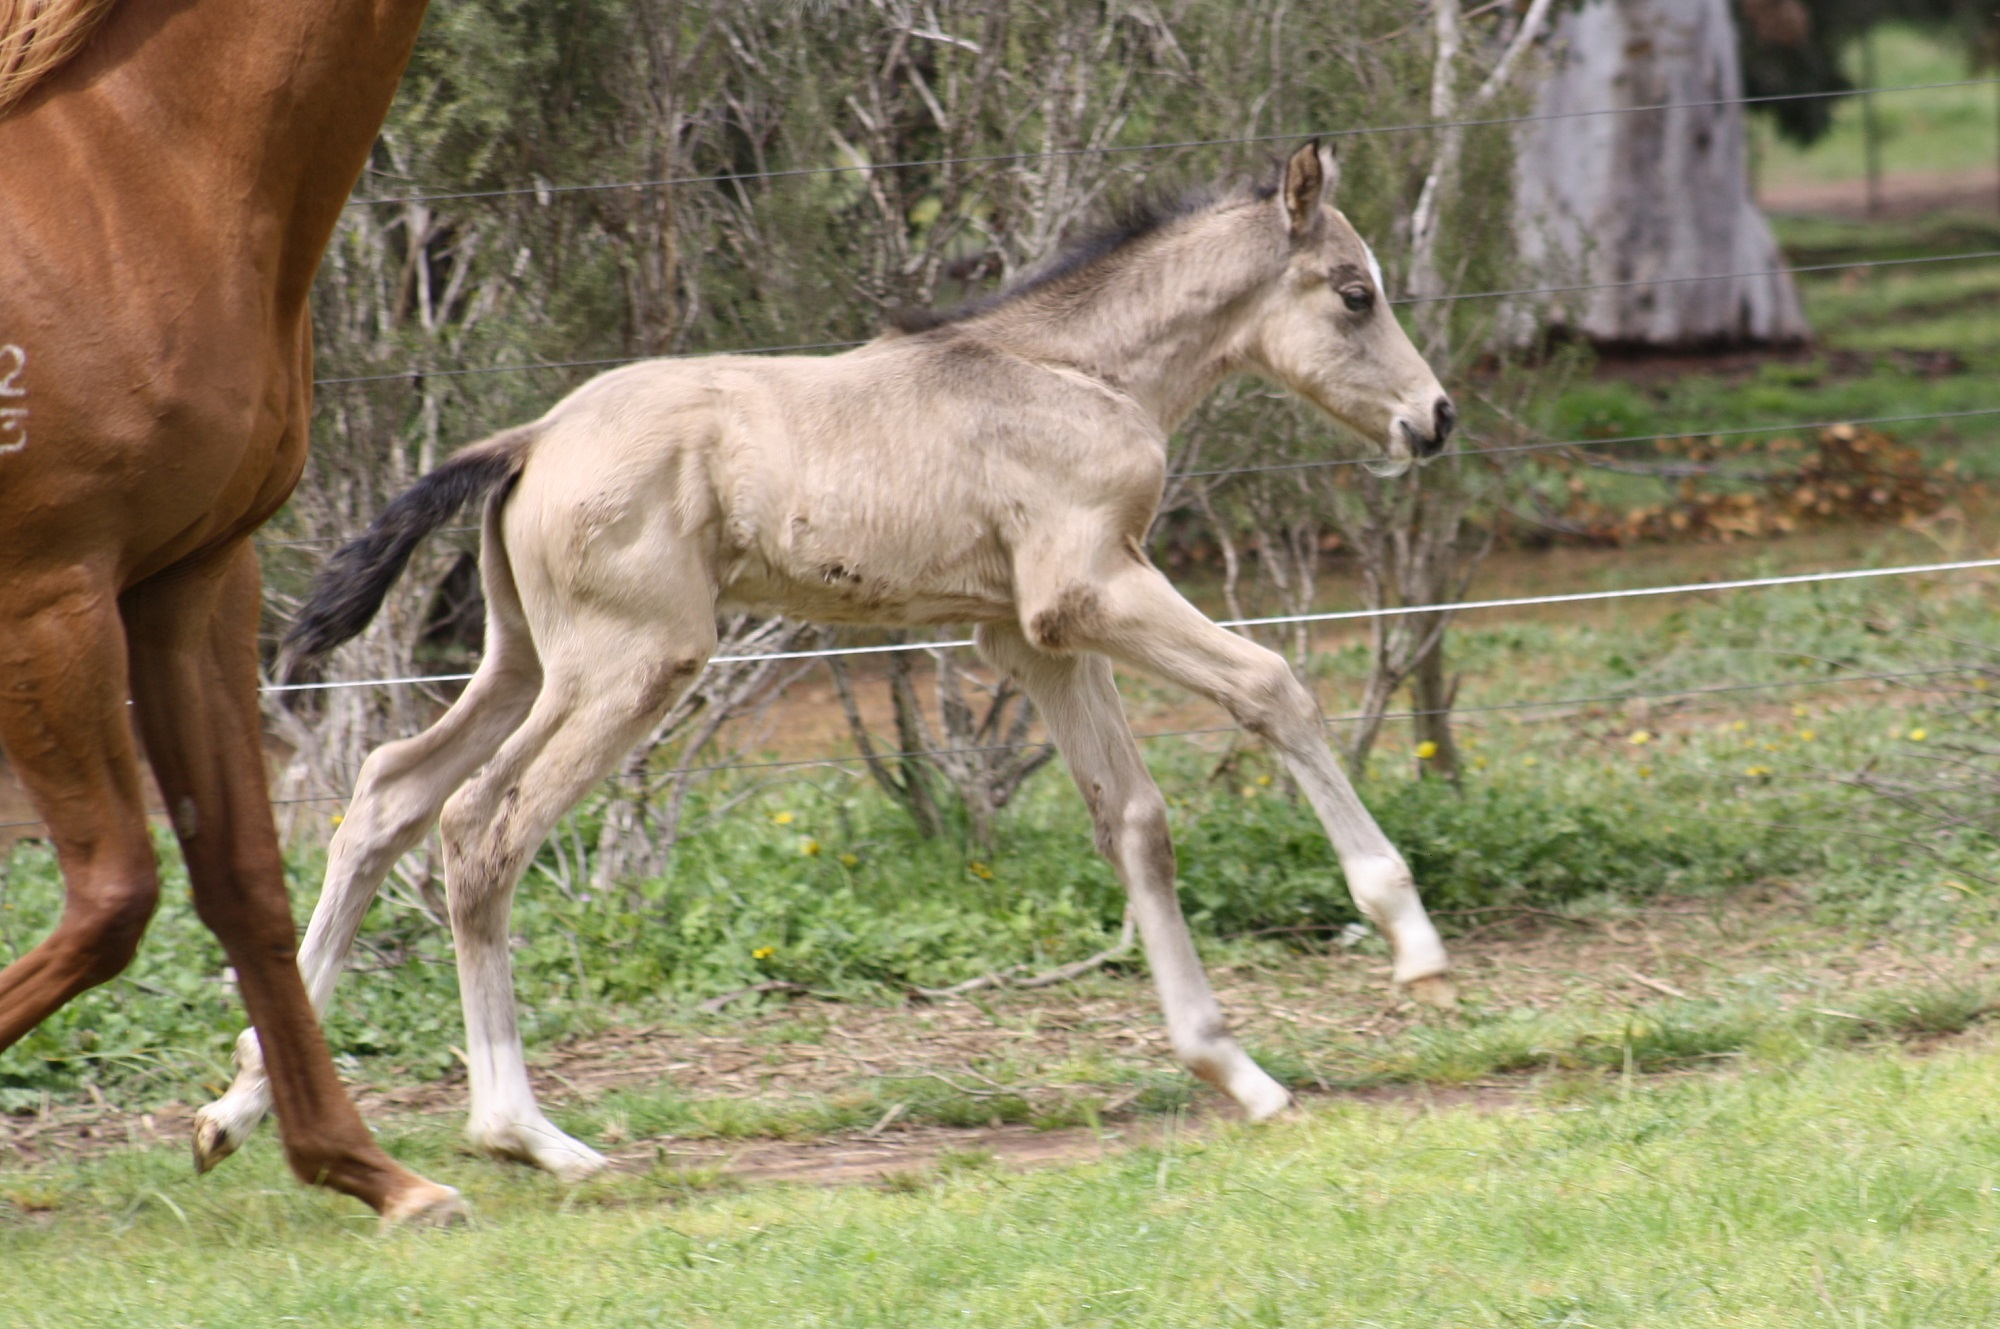 IMG 6392 crop email 2016 Foals